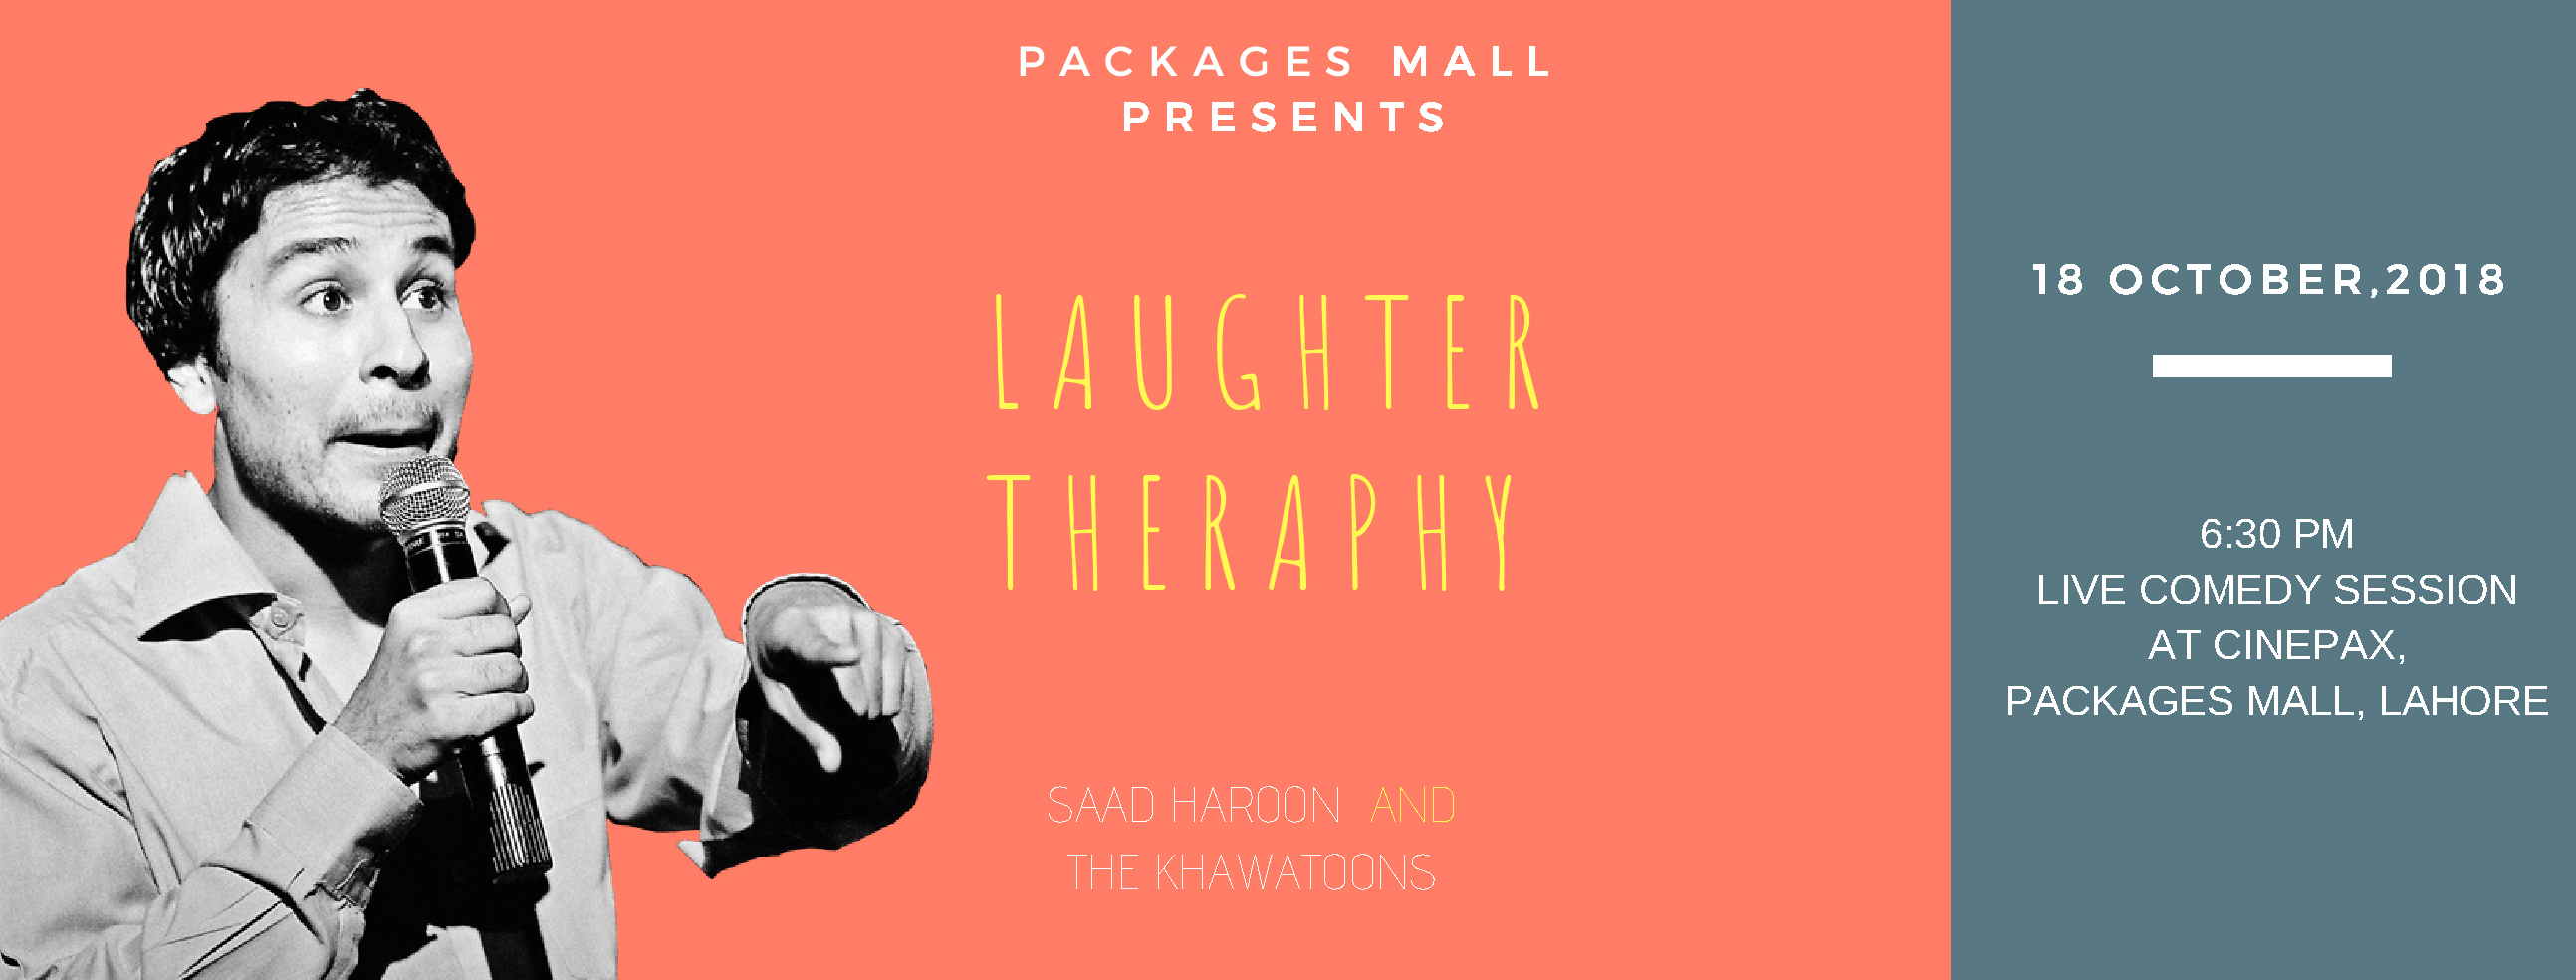 Saad Haroon Poster - Laughter Therapy: Stand Up Comedy Night at Packages Mall